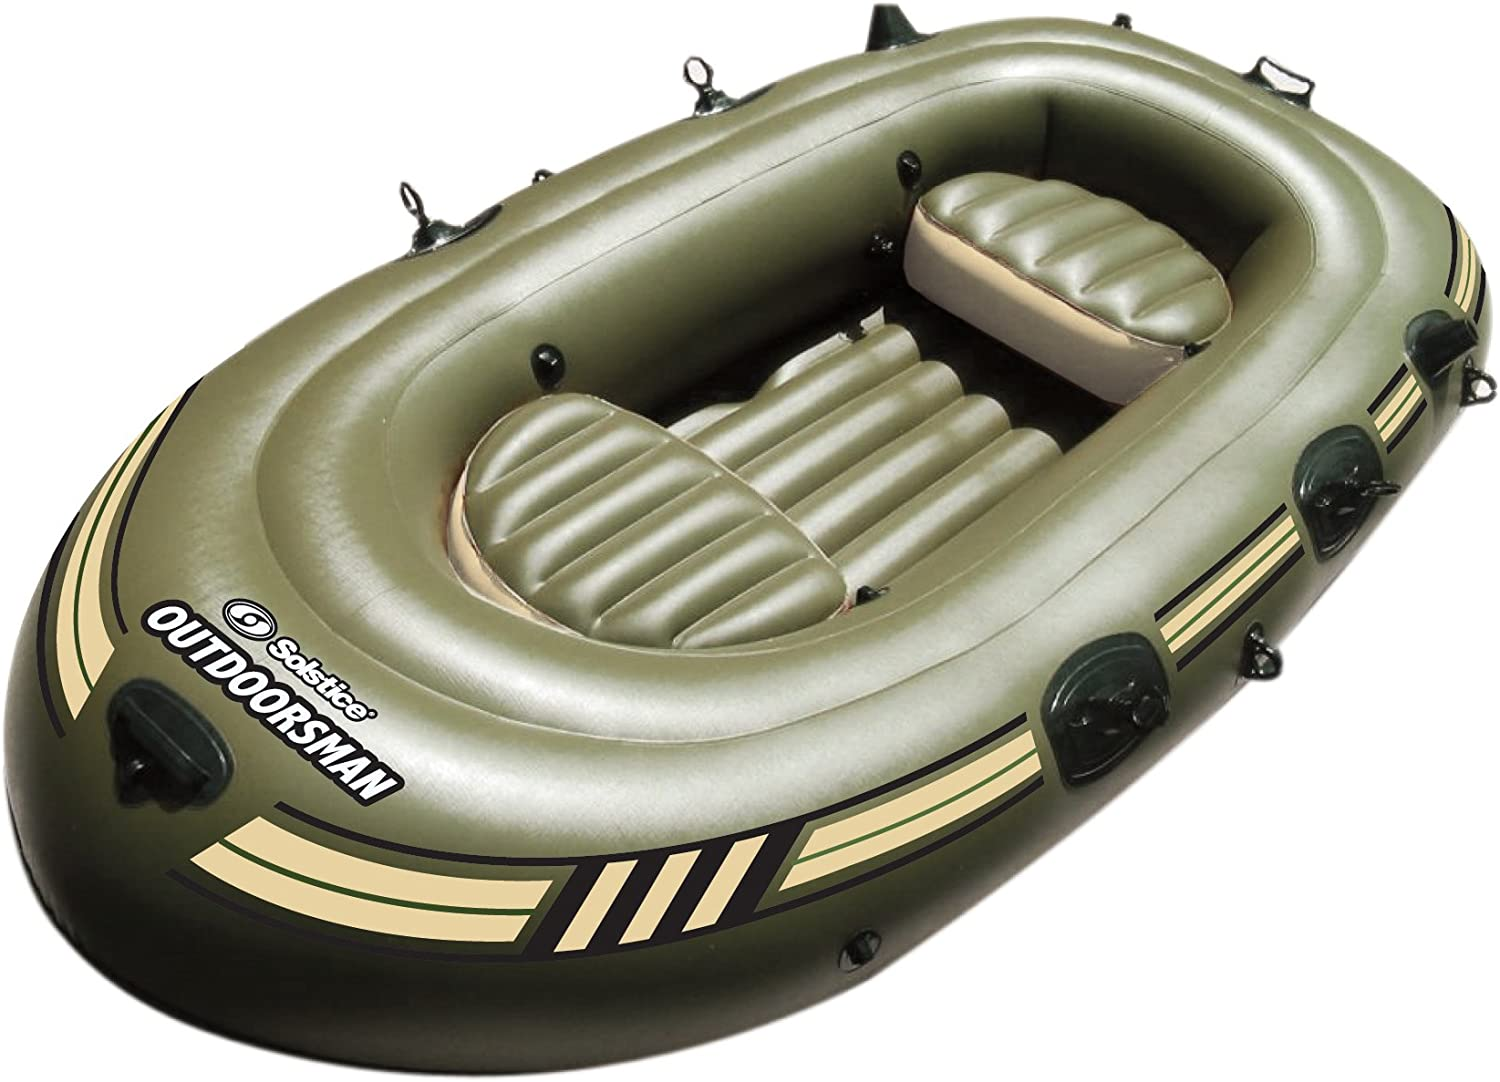 Solstice 40% OFF Cheap Sale by Swimline Fishing Outdoorsman Many popular brands Boat